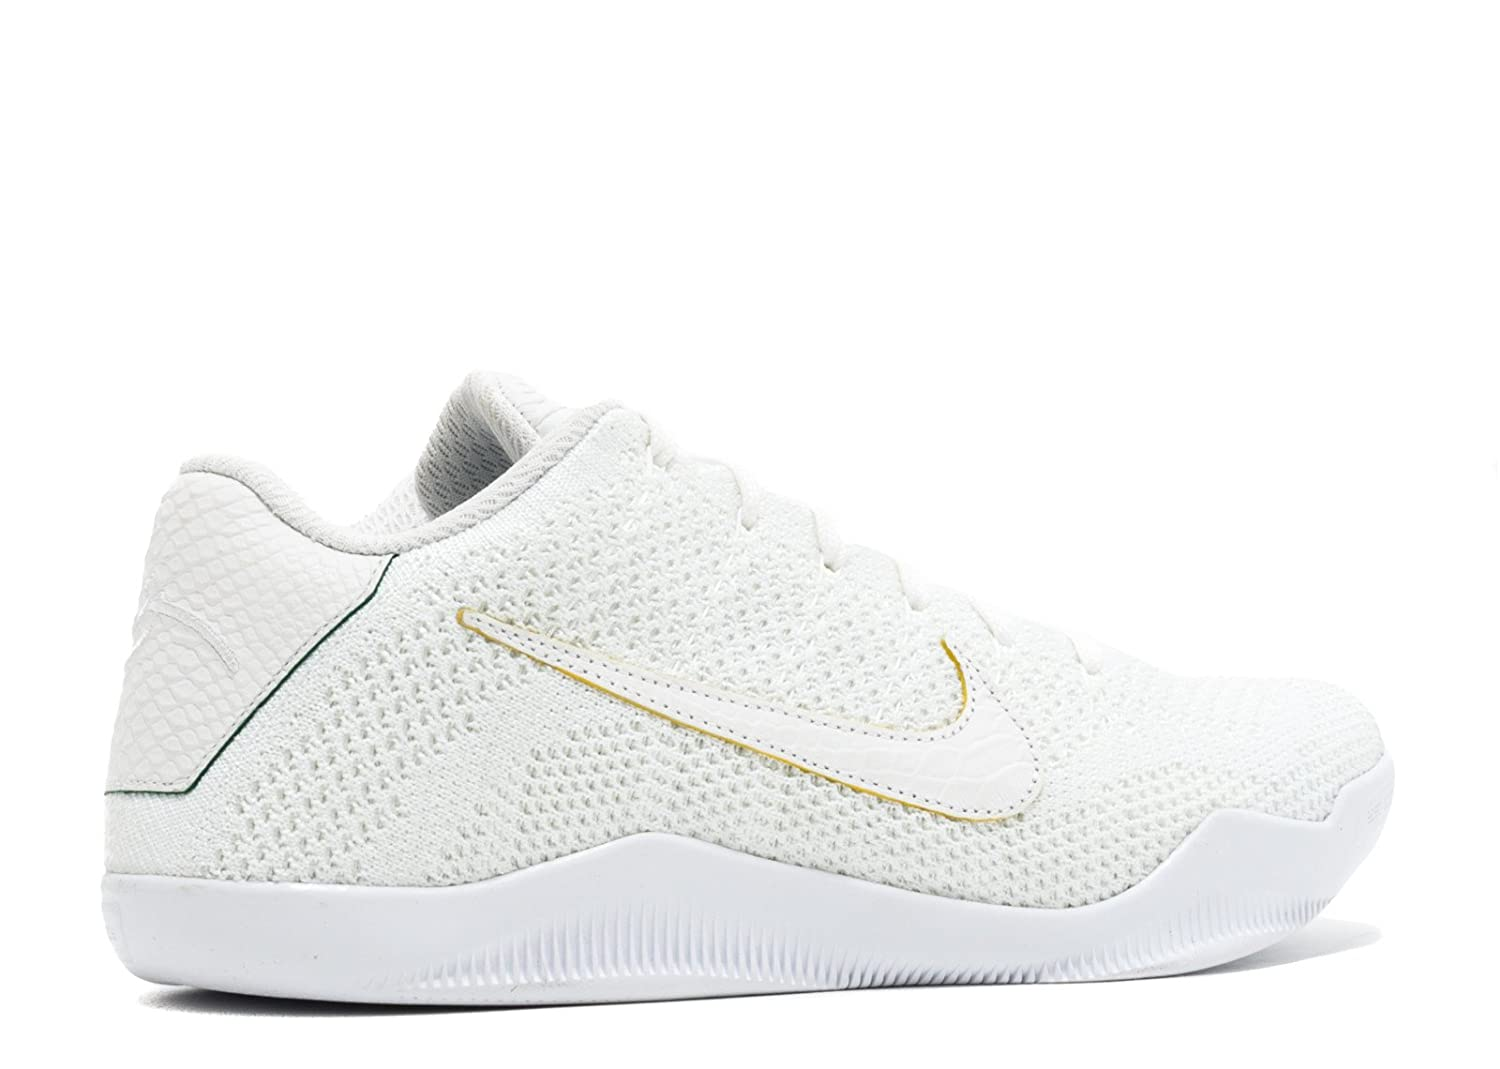 huge discount 8d963 ad337 Amazon.com   Kobe 11 Elite Low PRM  Brazil  - 889870-114 - Size 9.5    Basketball